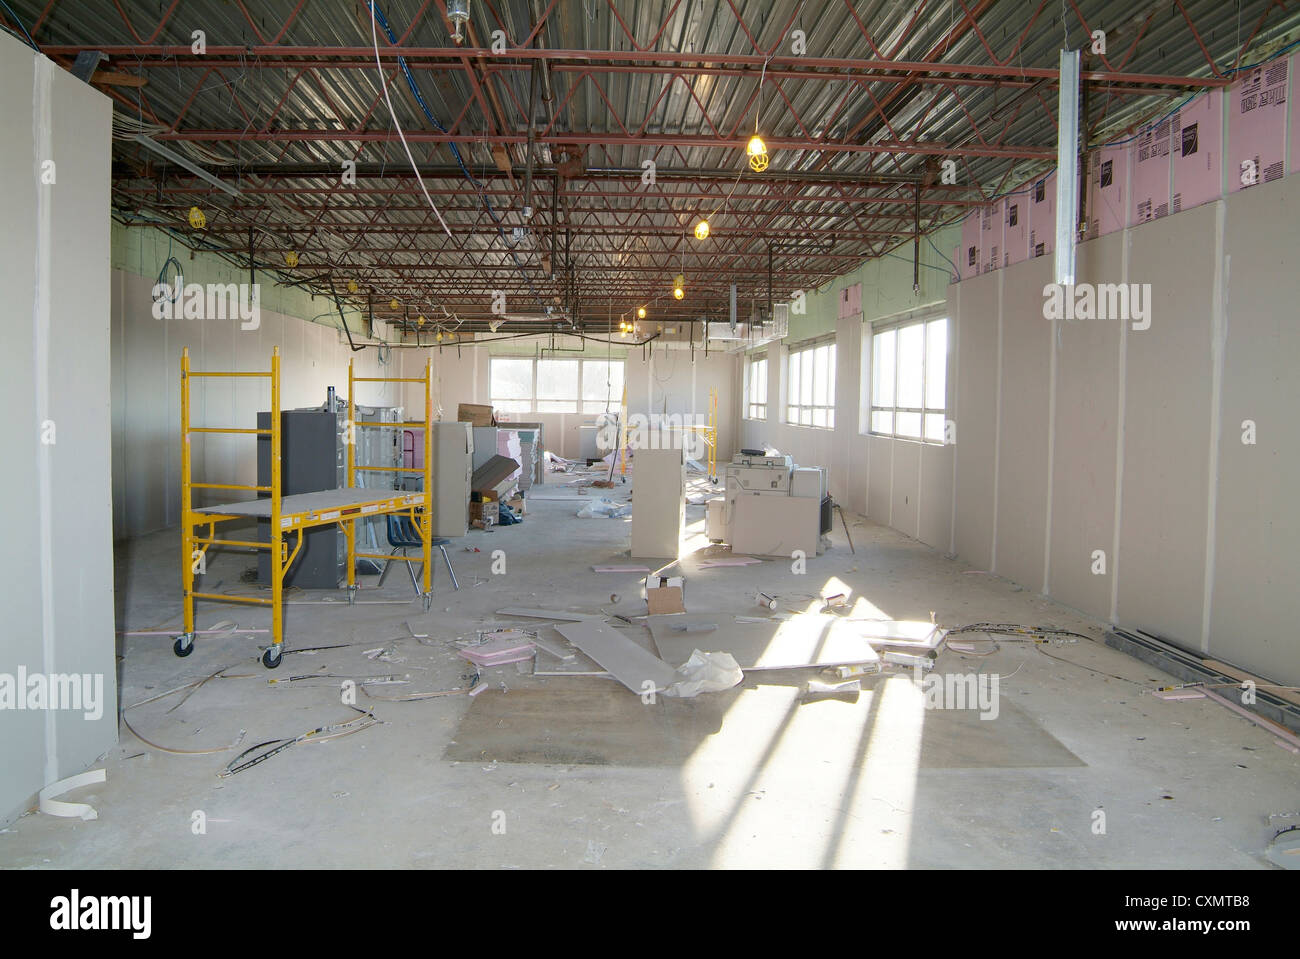 Commercial Industrial Building Interior Under Construction Stock Photo 50859964 Alamy